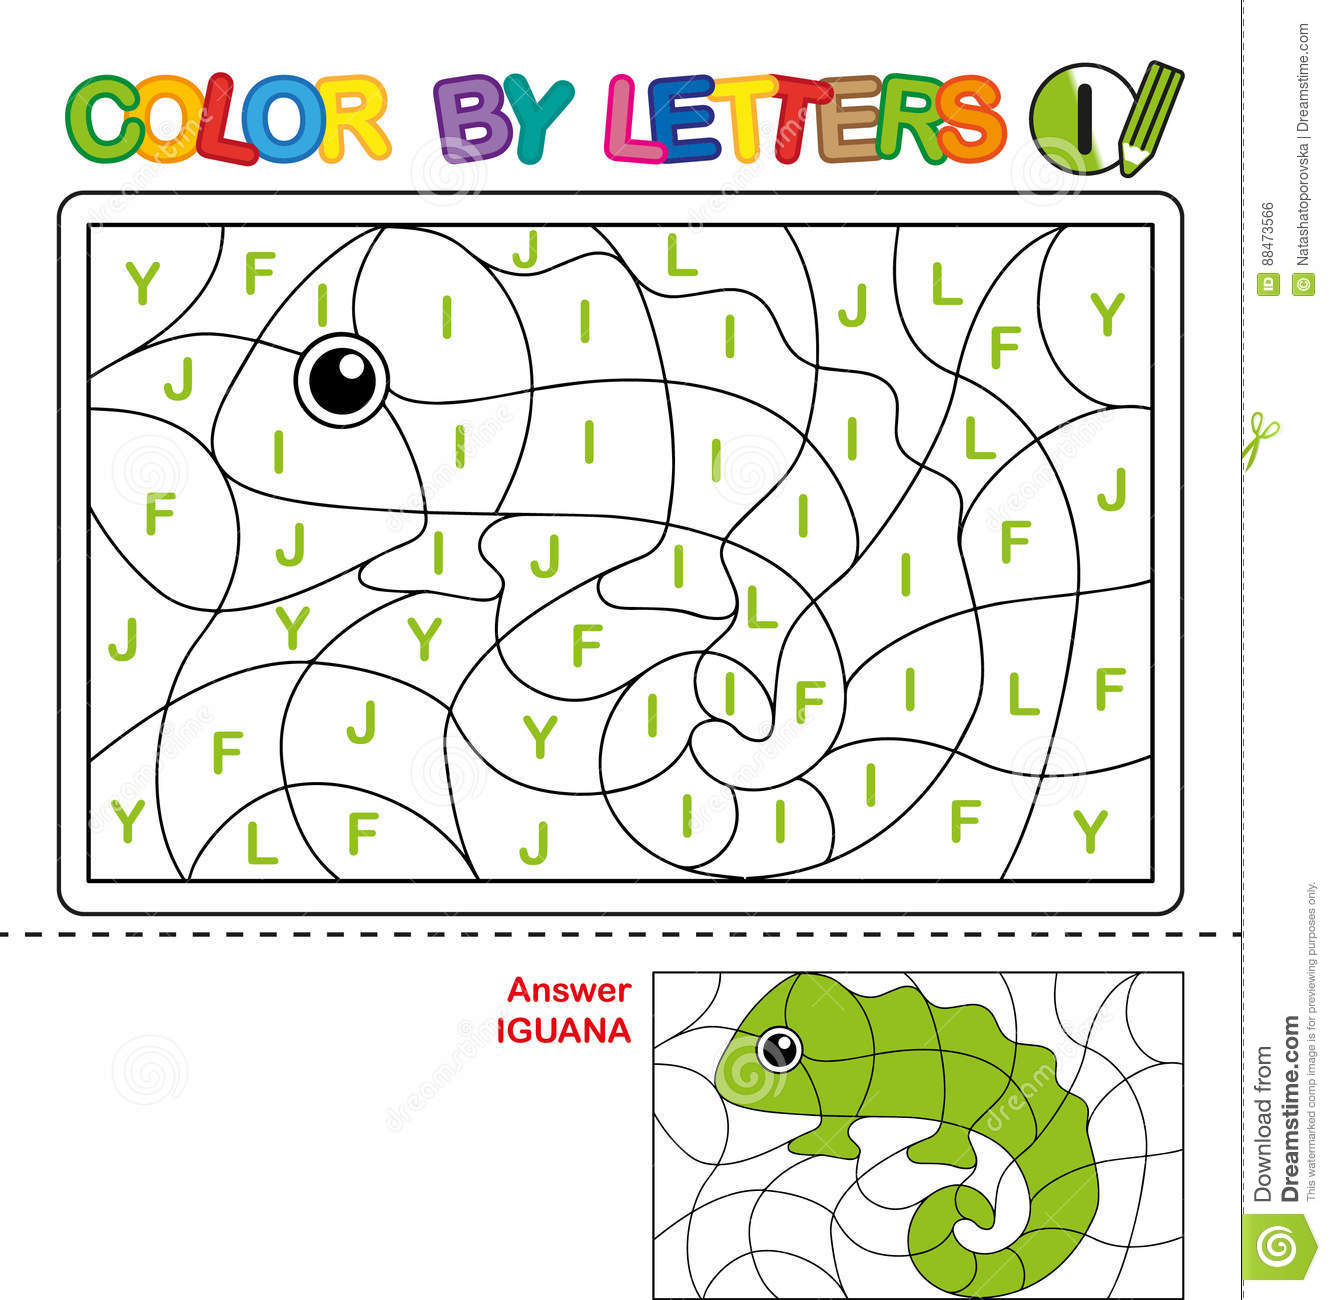 Color By Letter Puzzle For Children Iguana Stock Vector